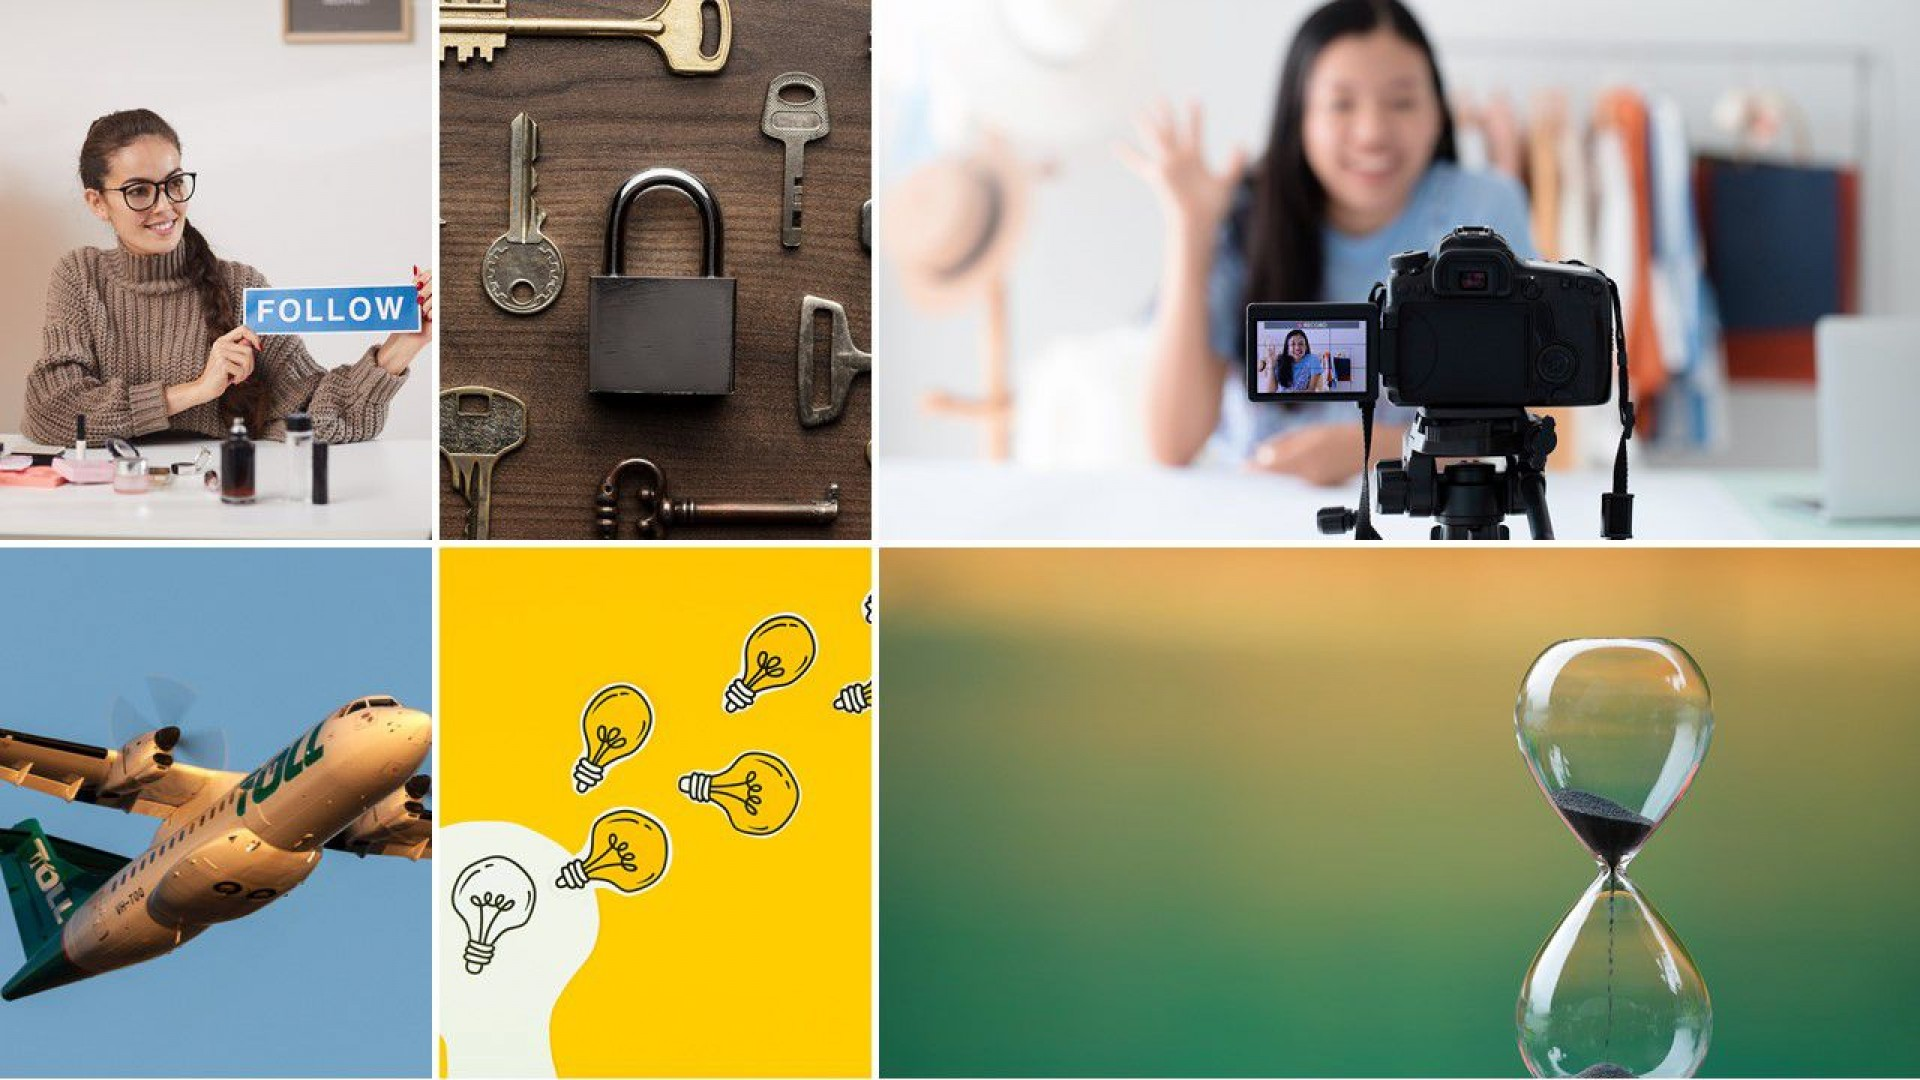 001 Impressive Free Photo Collage Template For Powerpoint Inspiration 1920